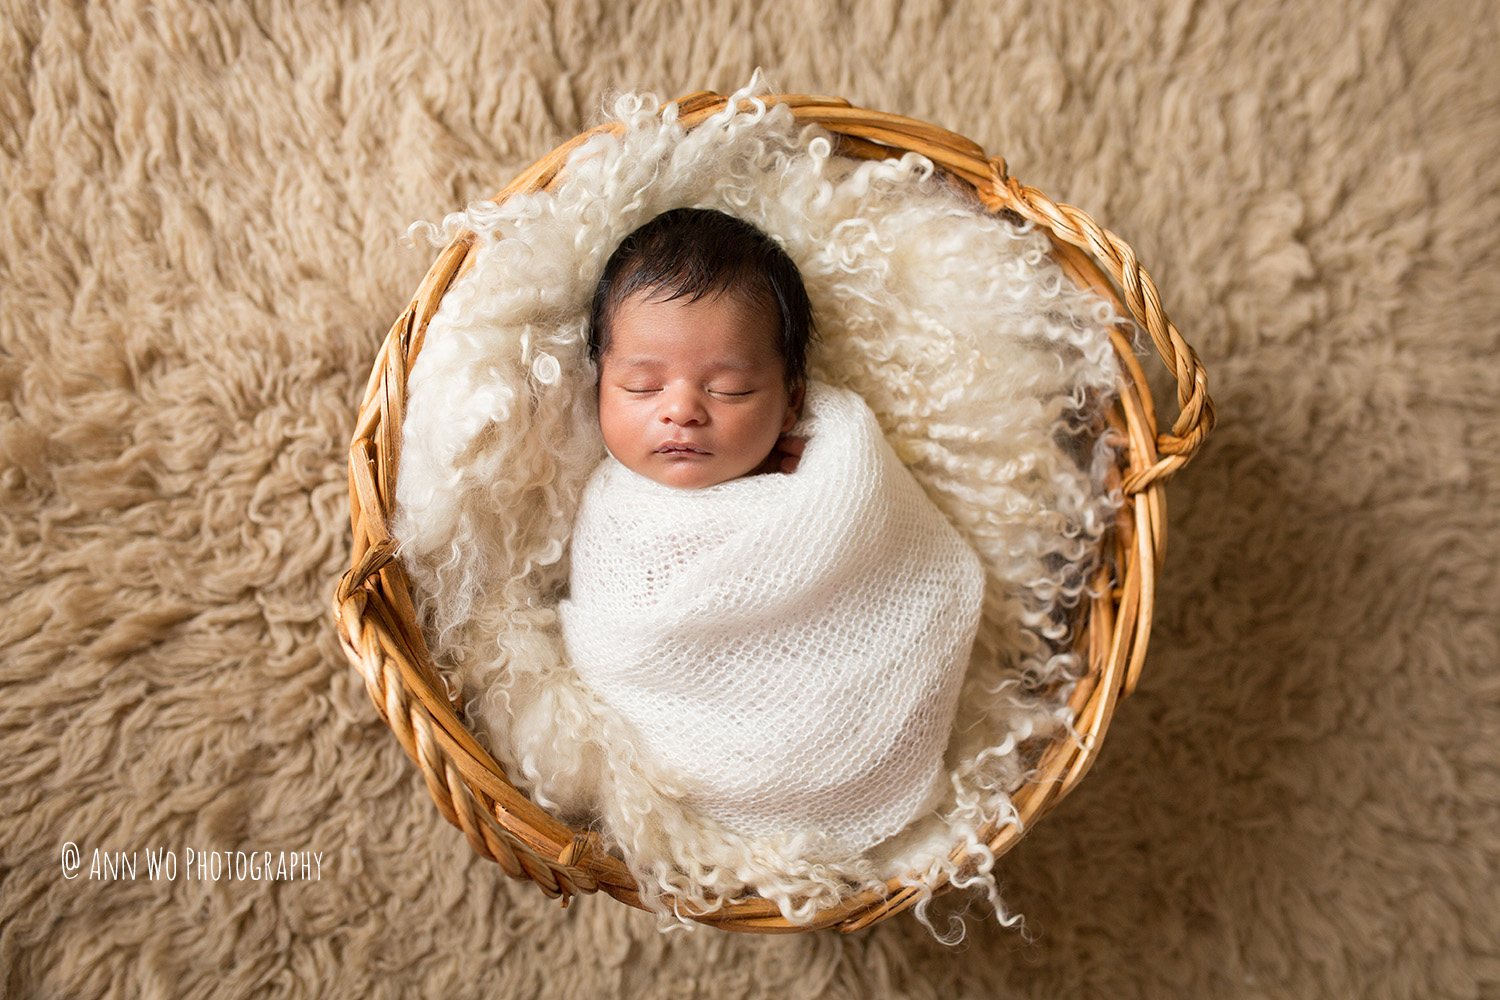 019-newborn-photography-session-at-home-ann-wo-london-19.JPG